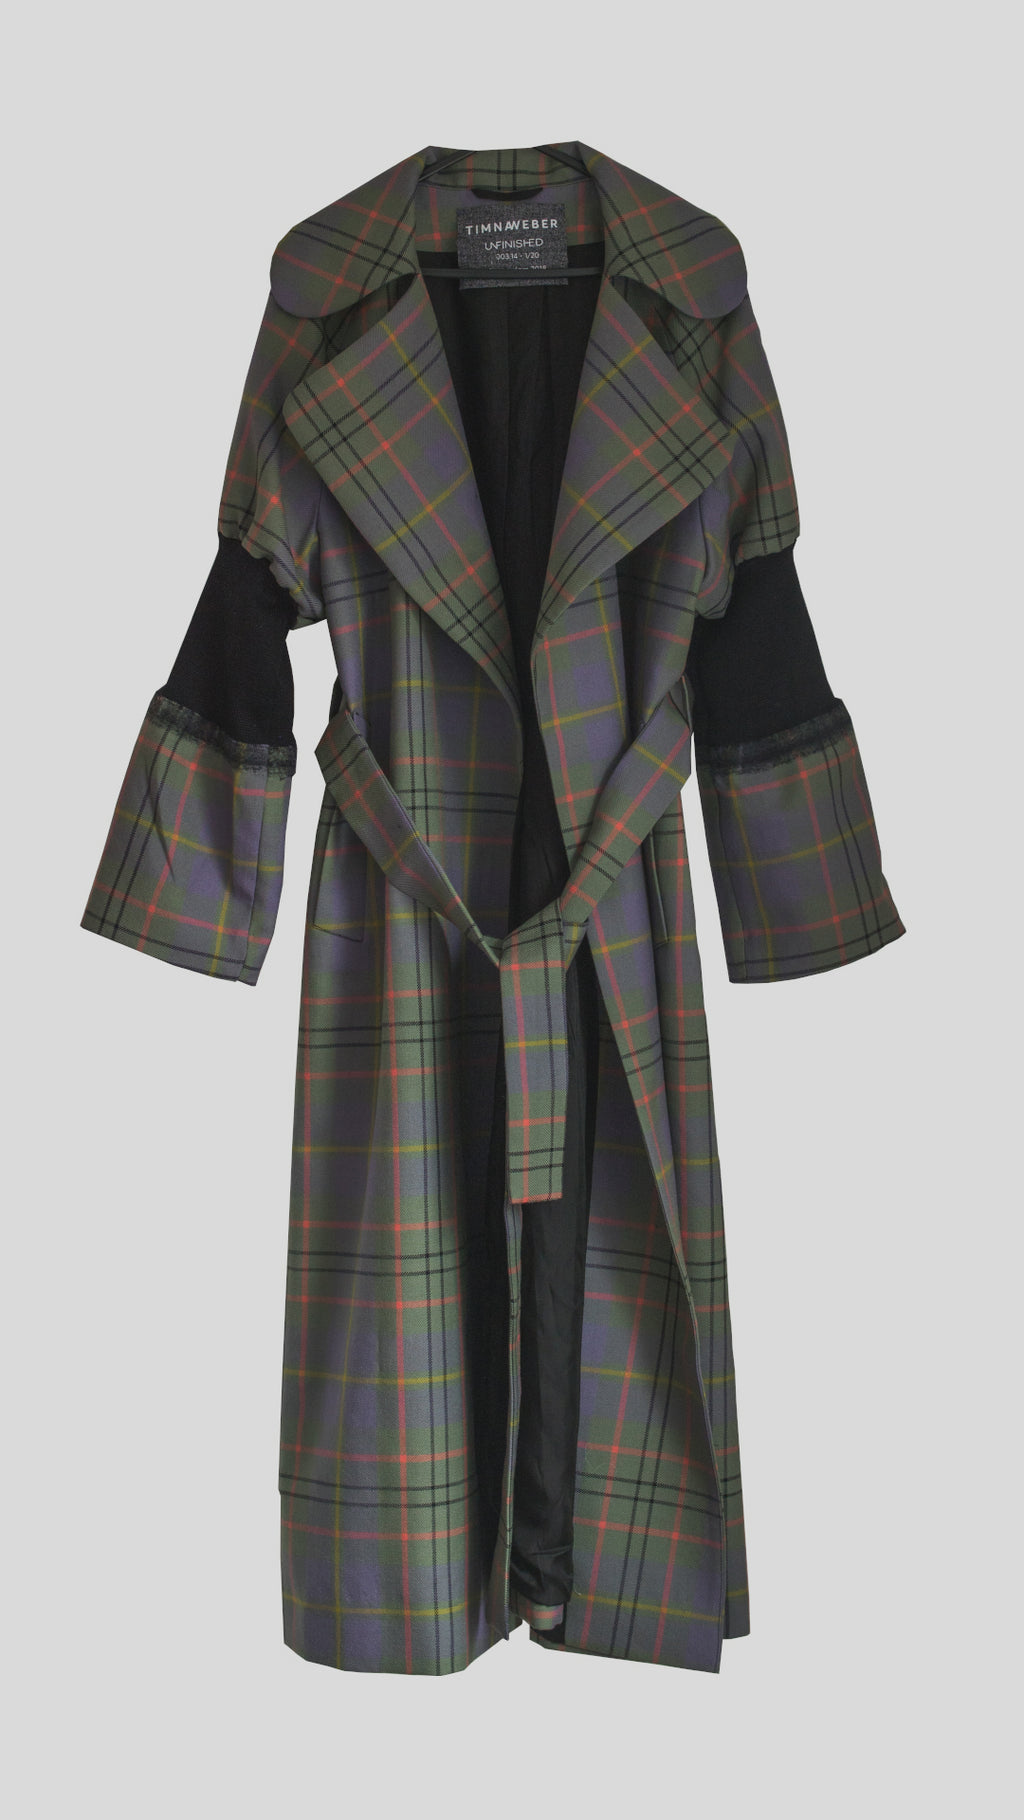 Plaid Wool Coat with Knitted Details